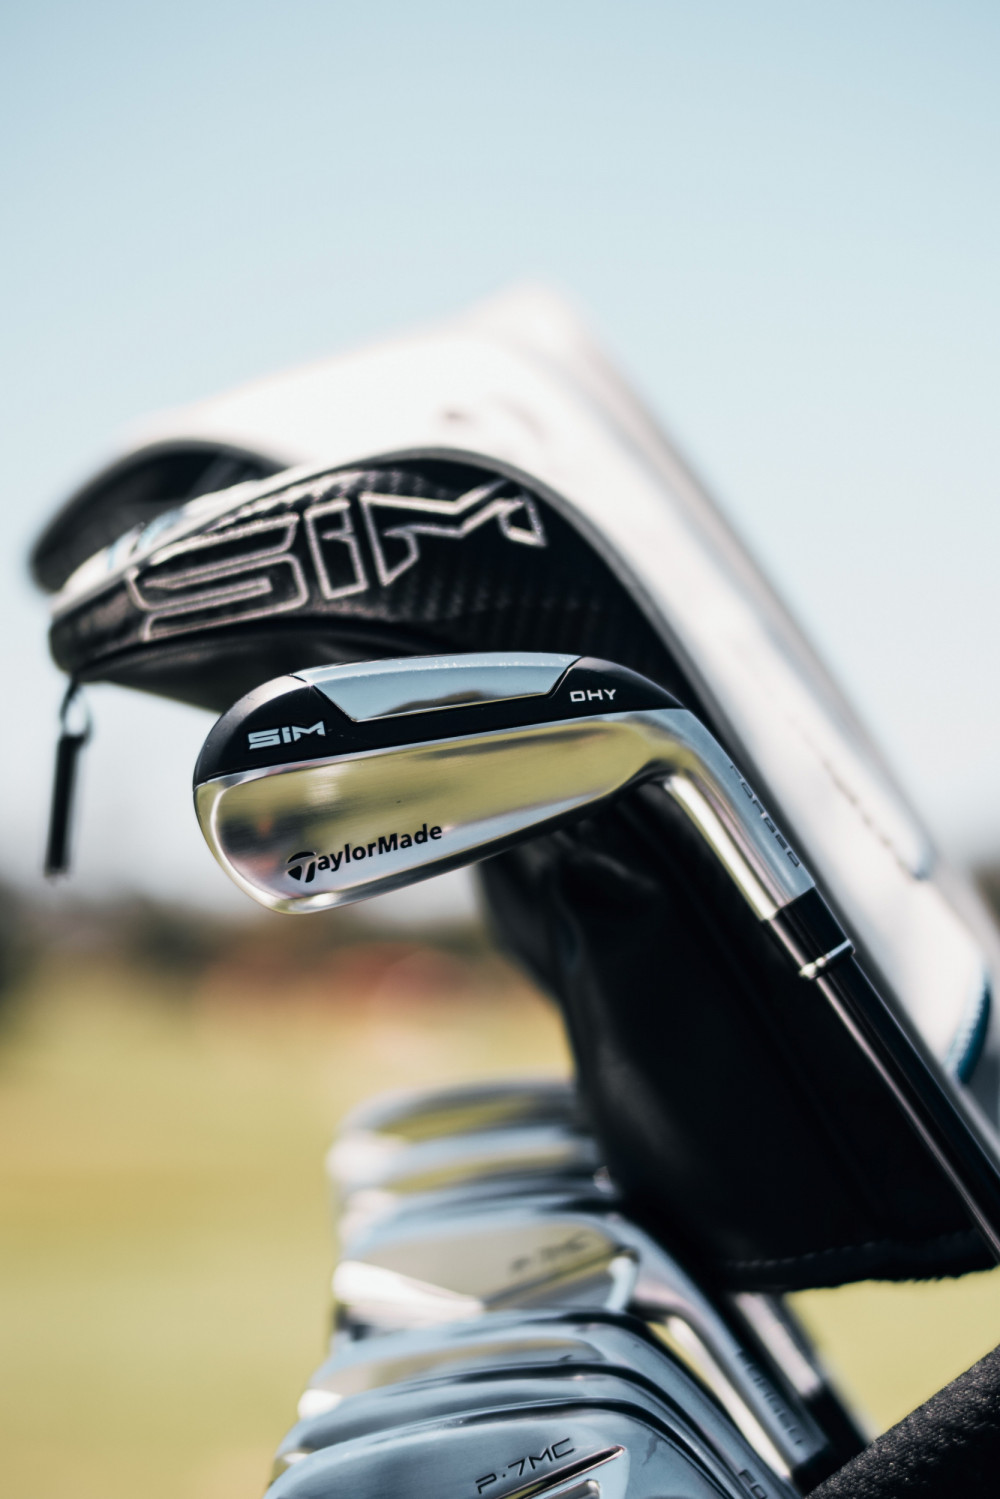 SIM DHY is designed to push the boundaries of forgiveness in utility irons, delivering high launch and versatile performance.